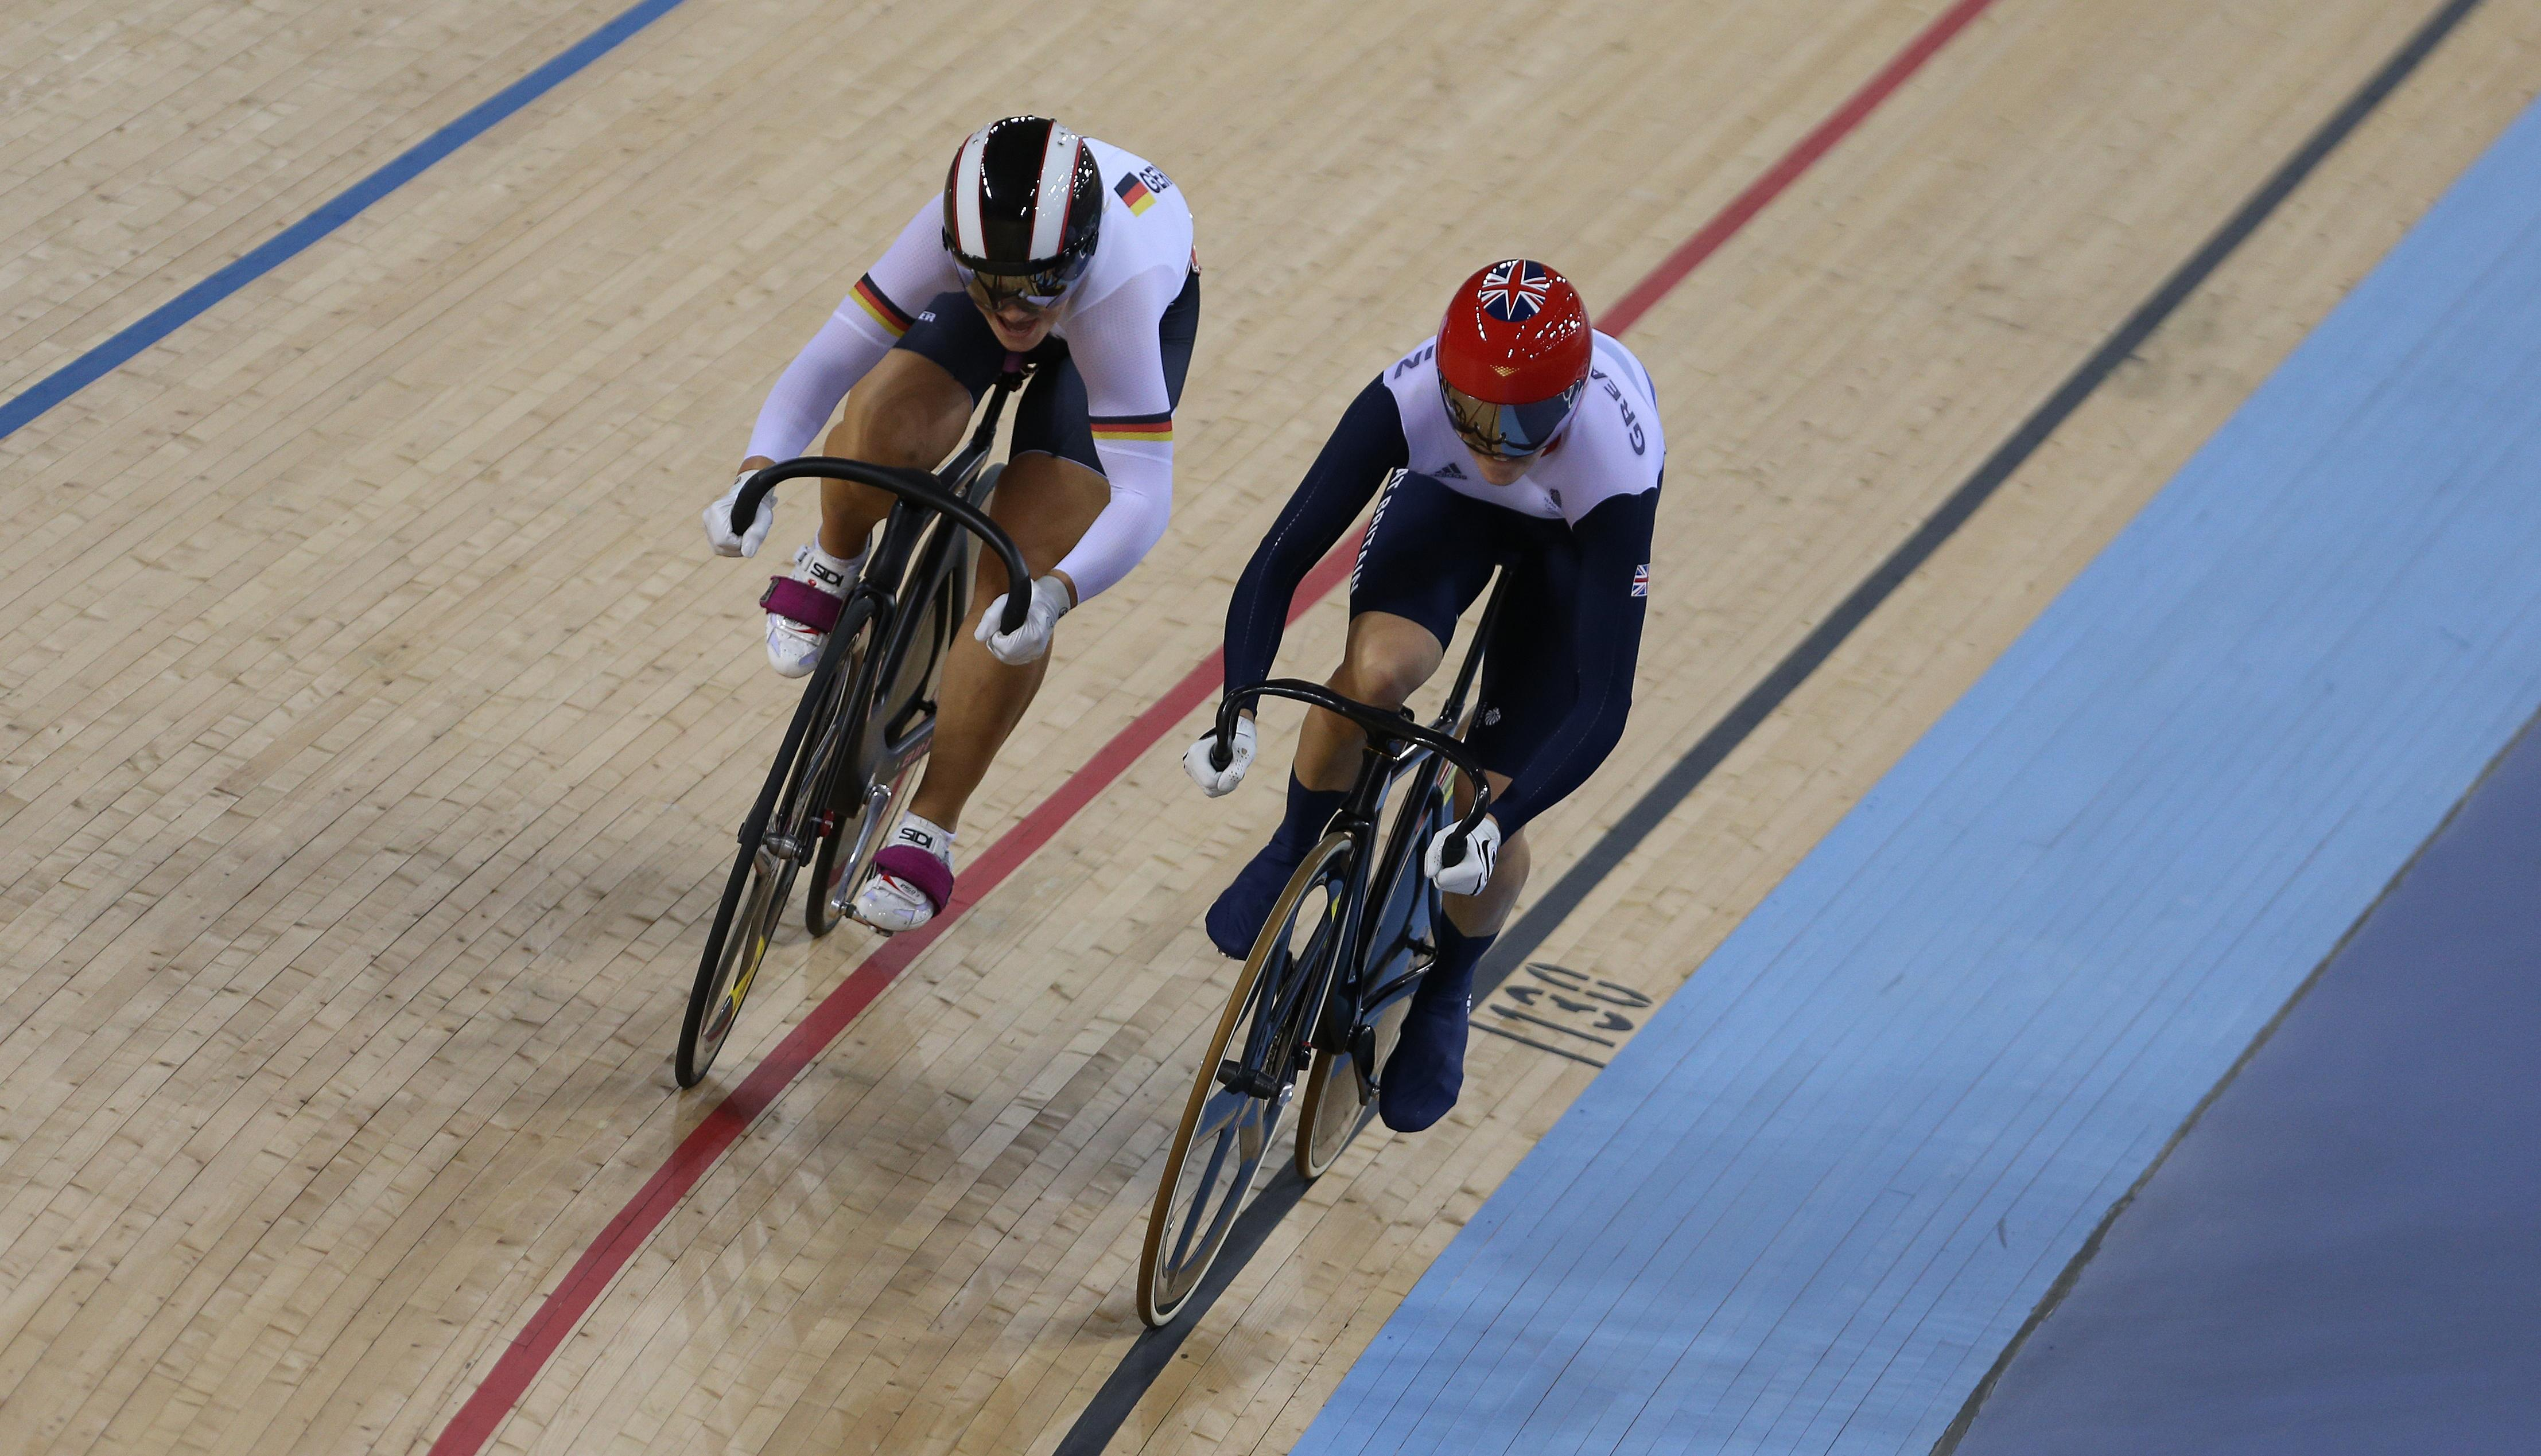 Victoria Pendleton just inched out Vogel in the semi-final of the individual sprint at London 2012.